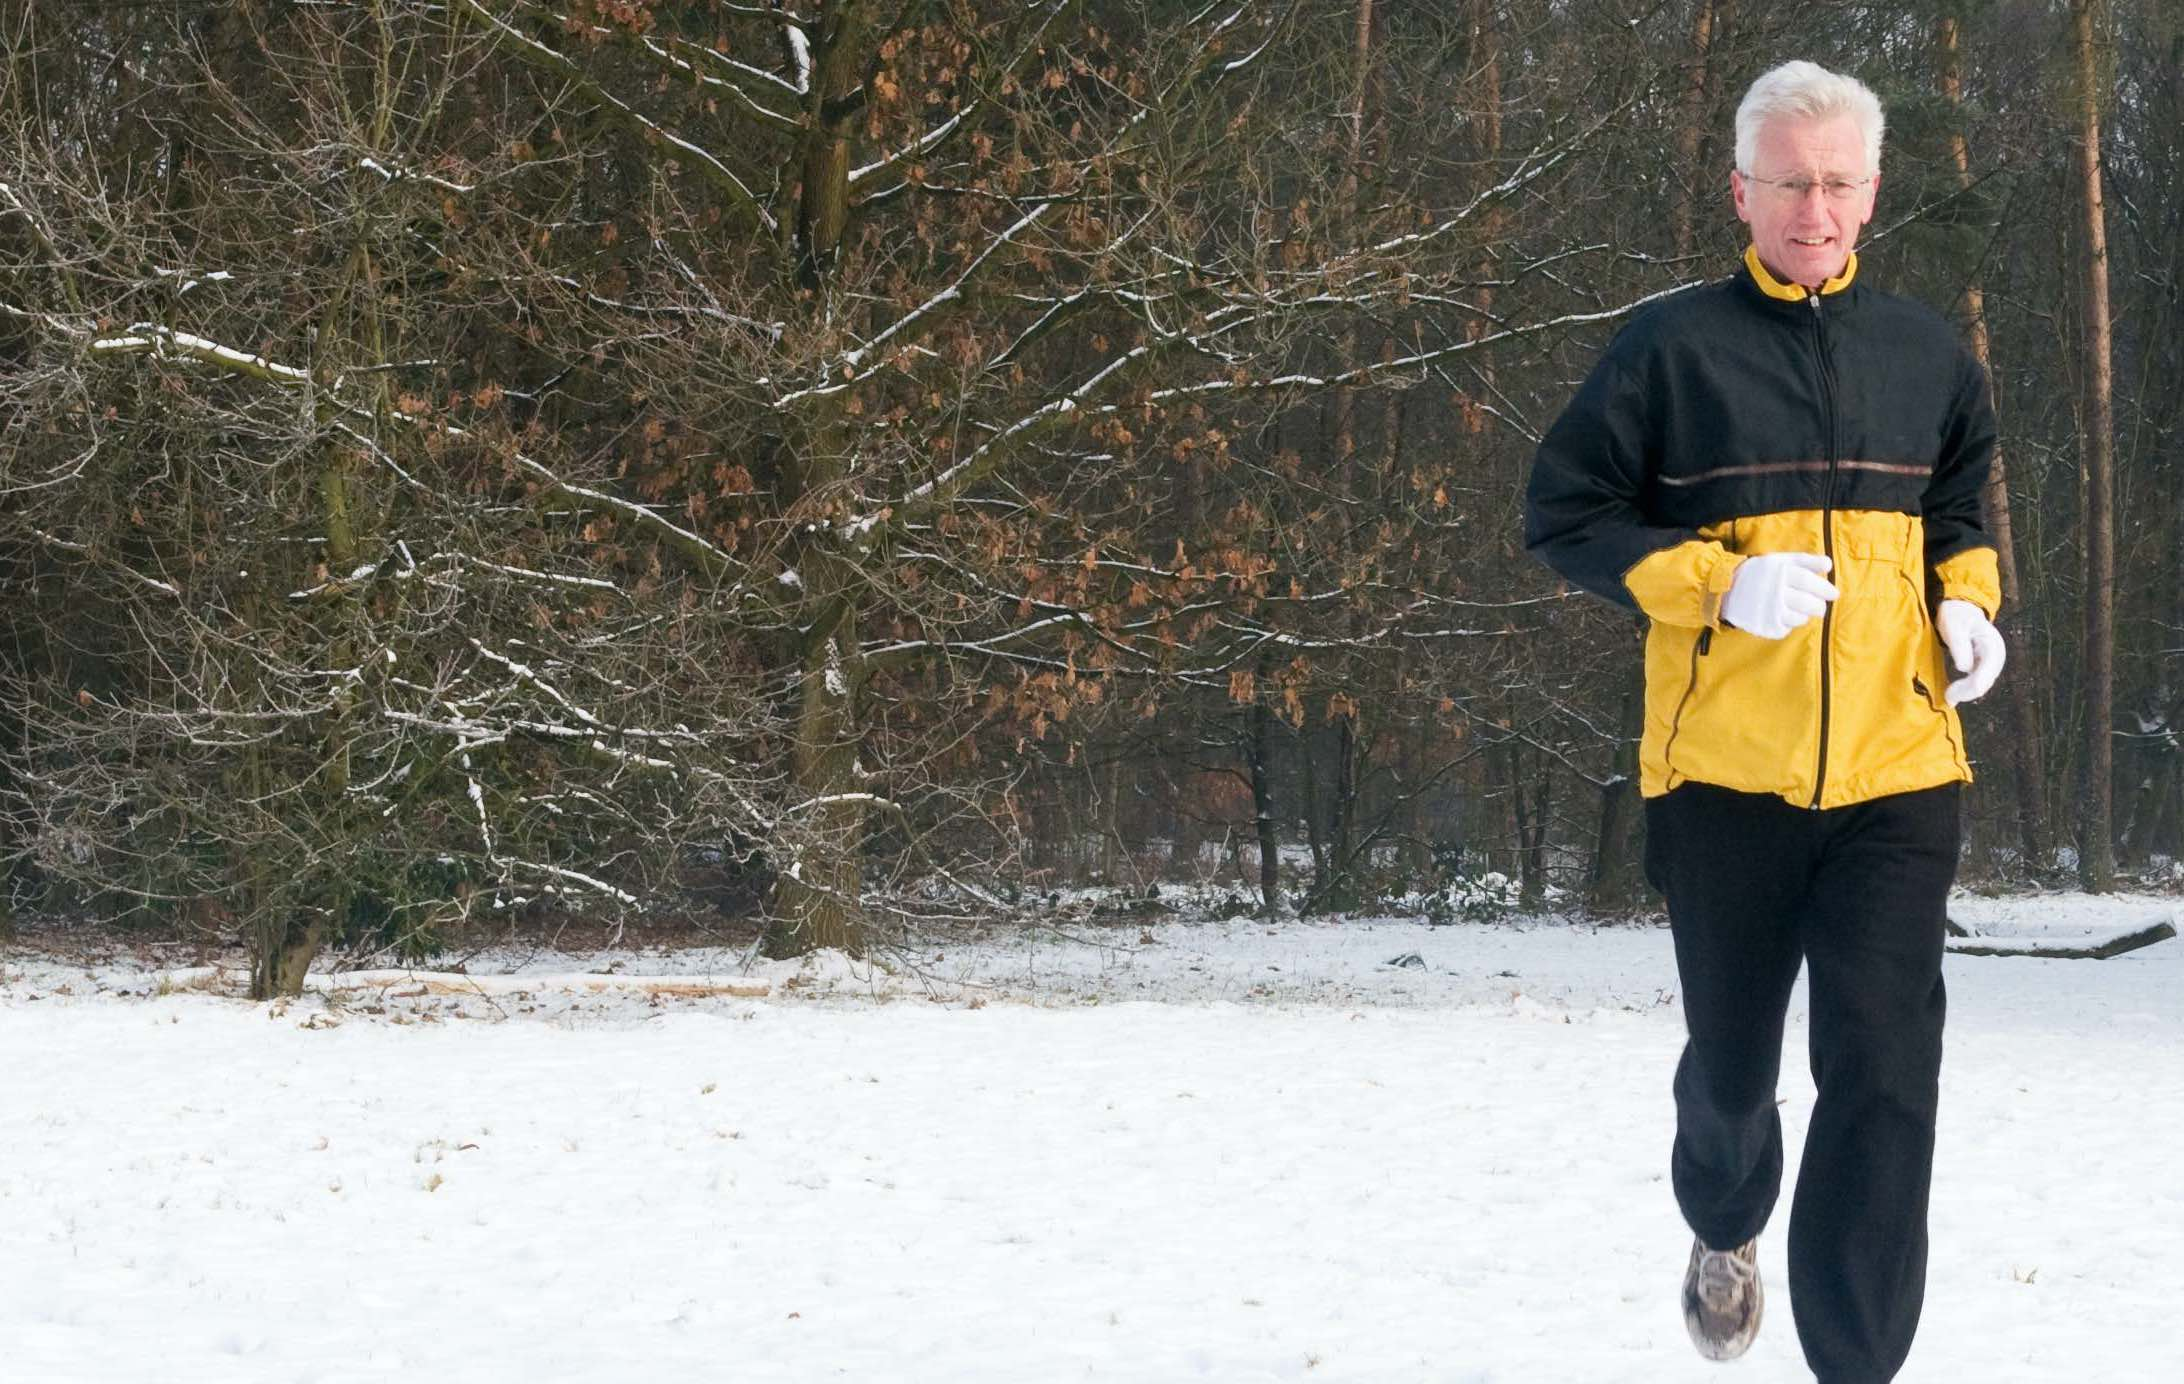 Are you running right? Here's how to exercise safe in the colder months